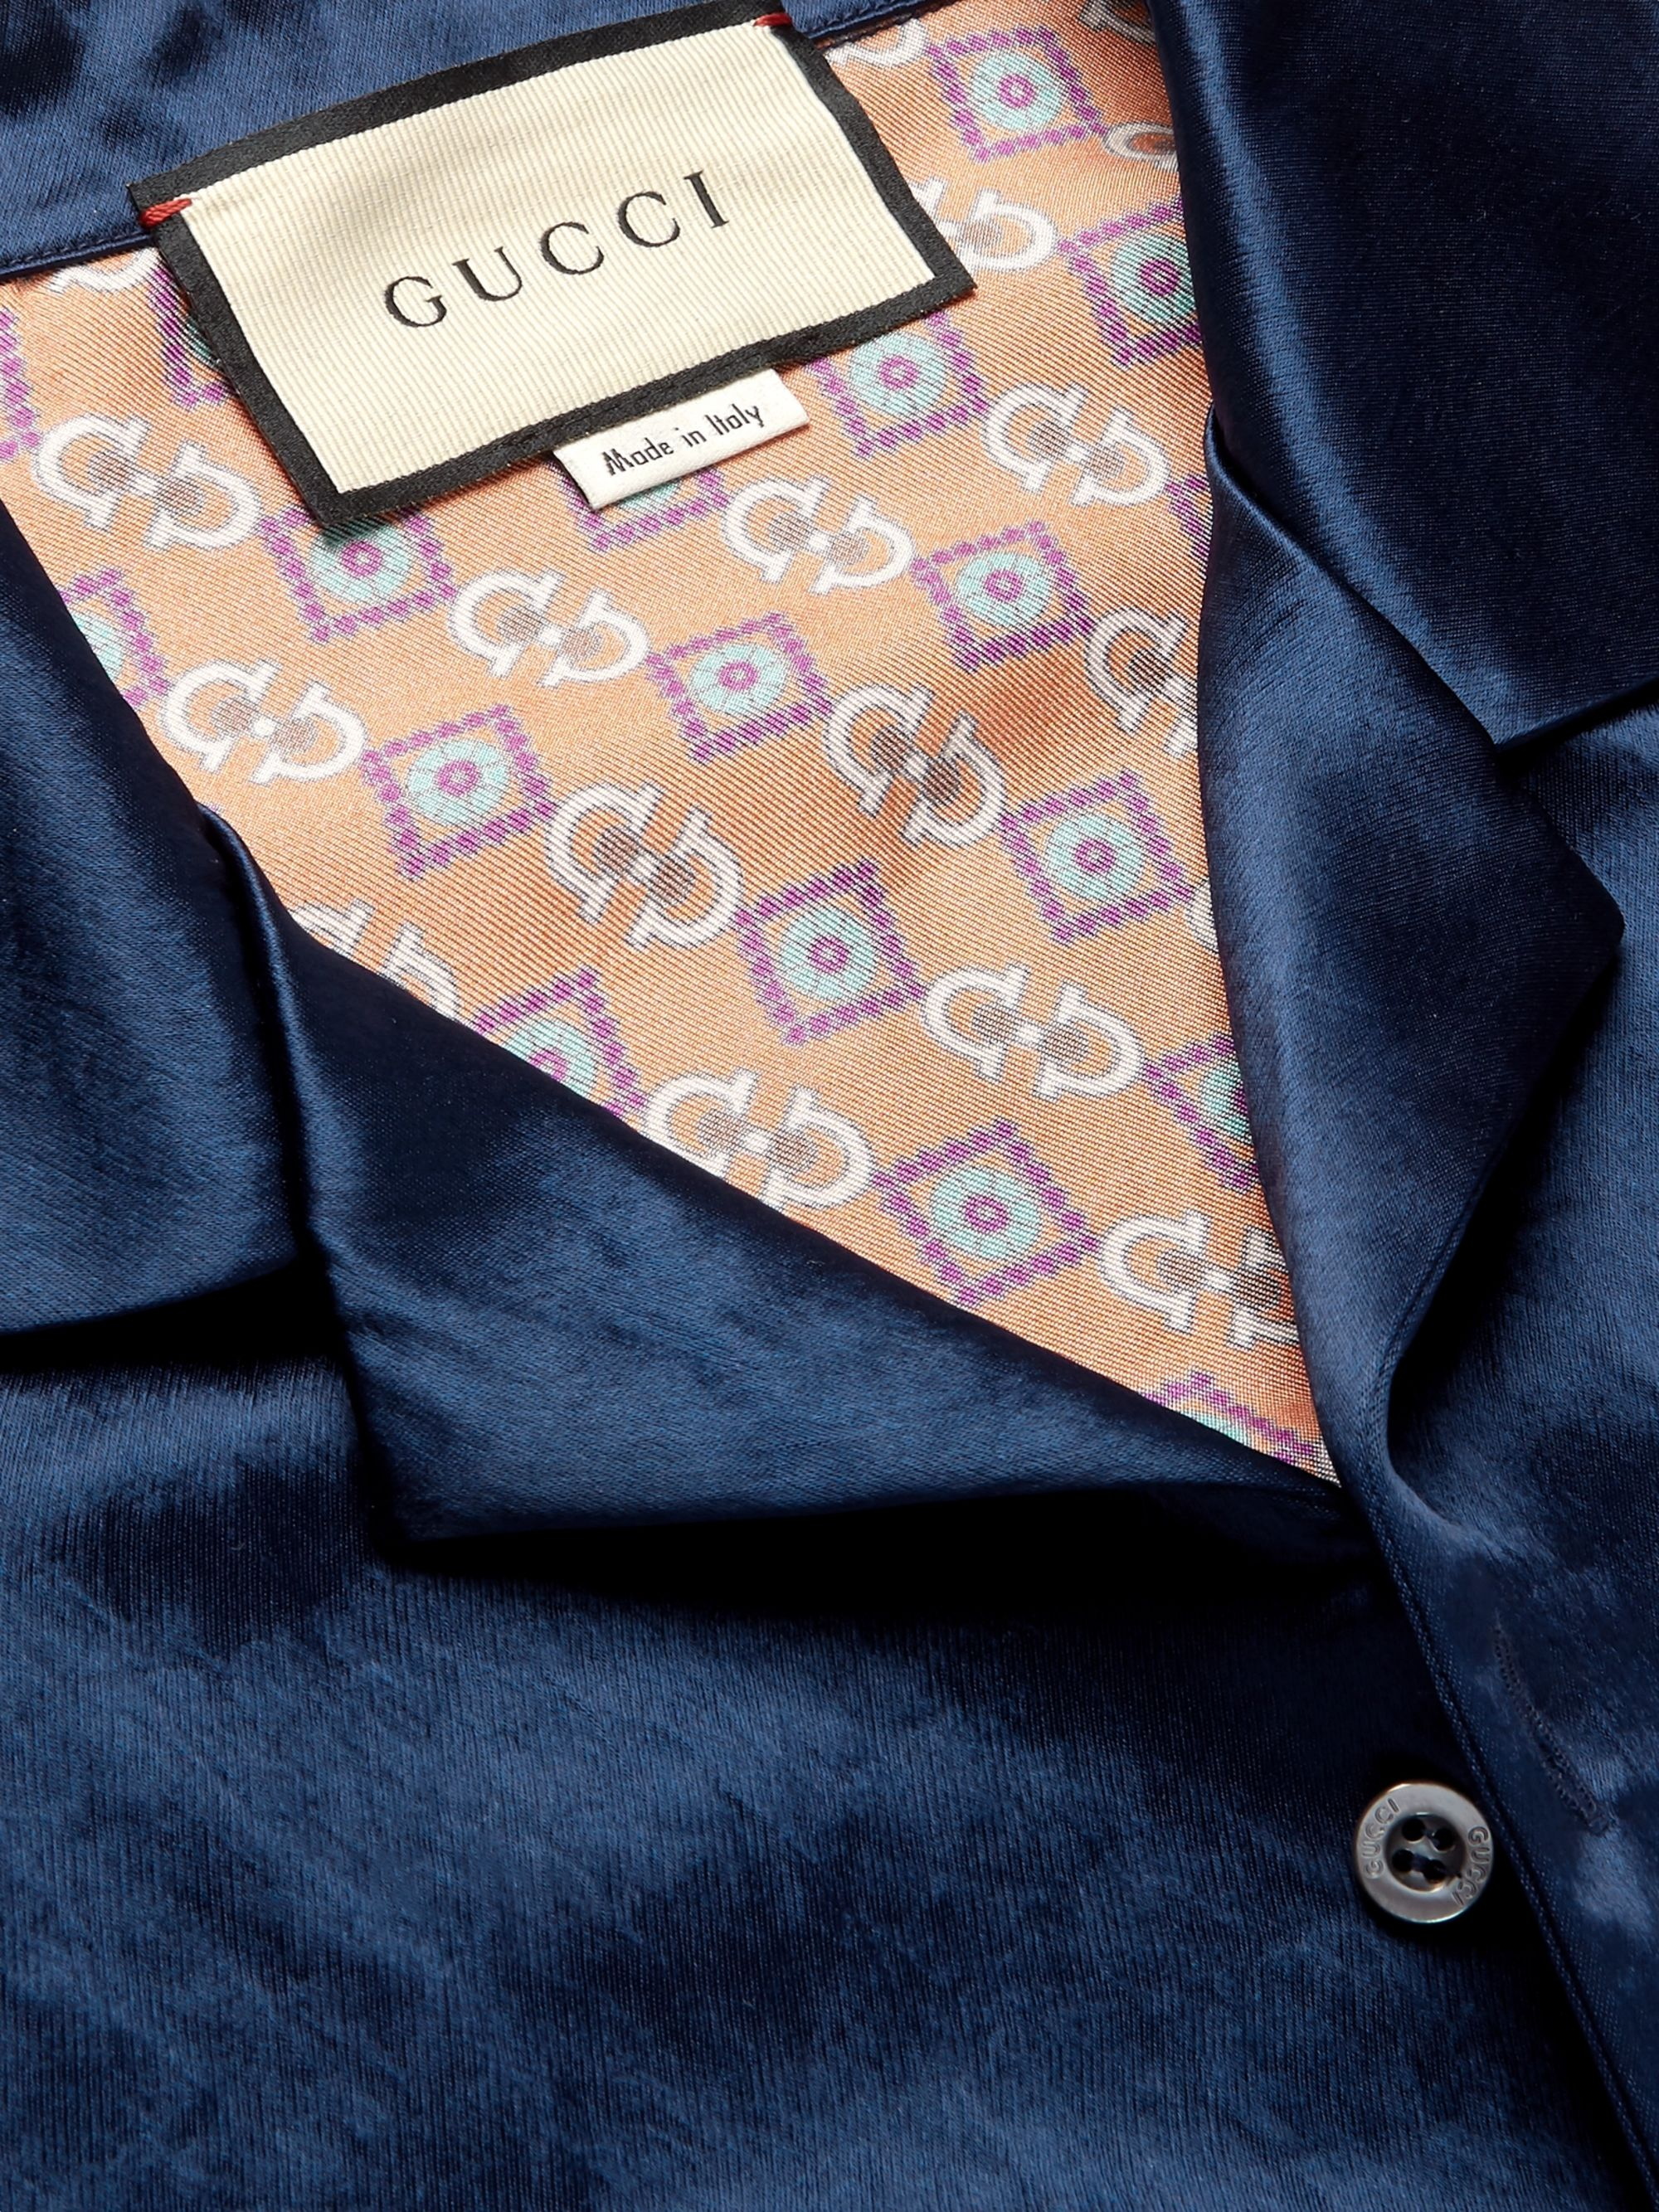 Gucci Camp-Collar Satin and Printed Silk-Twill Shirt